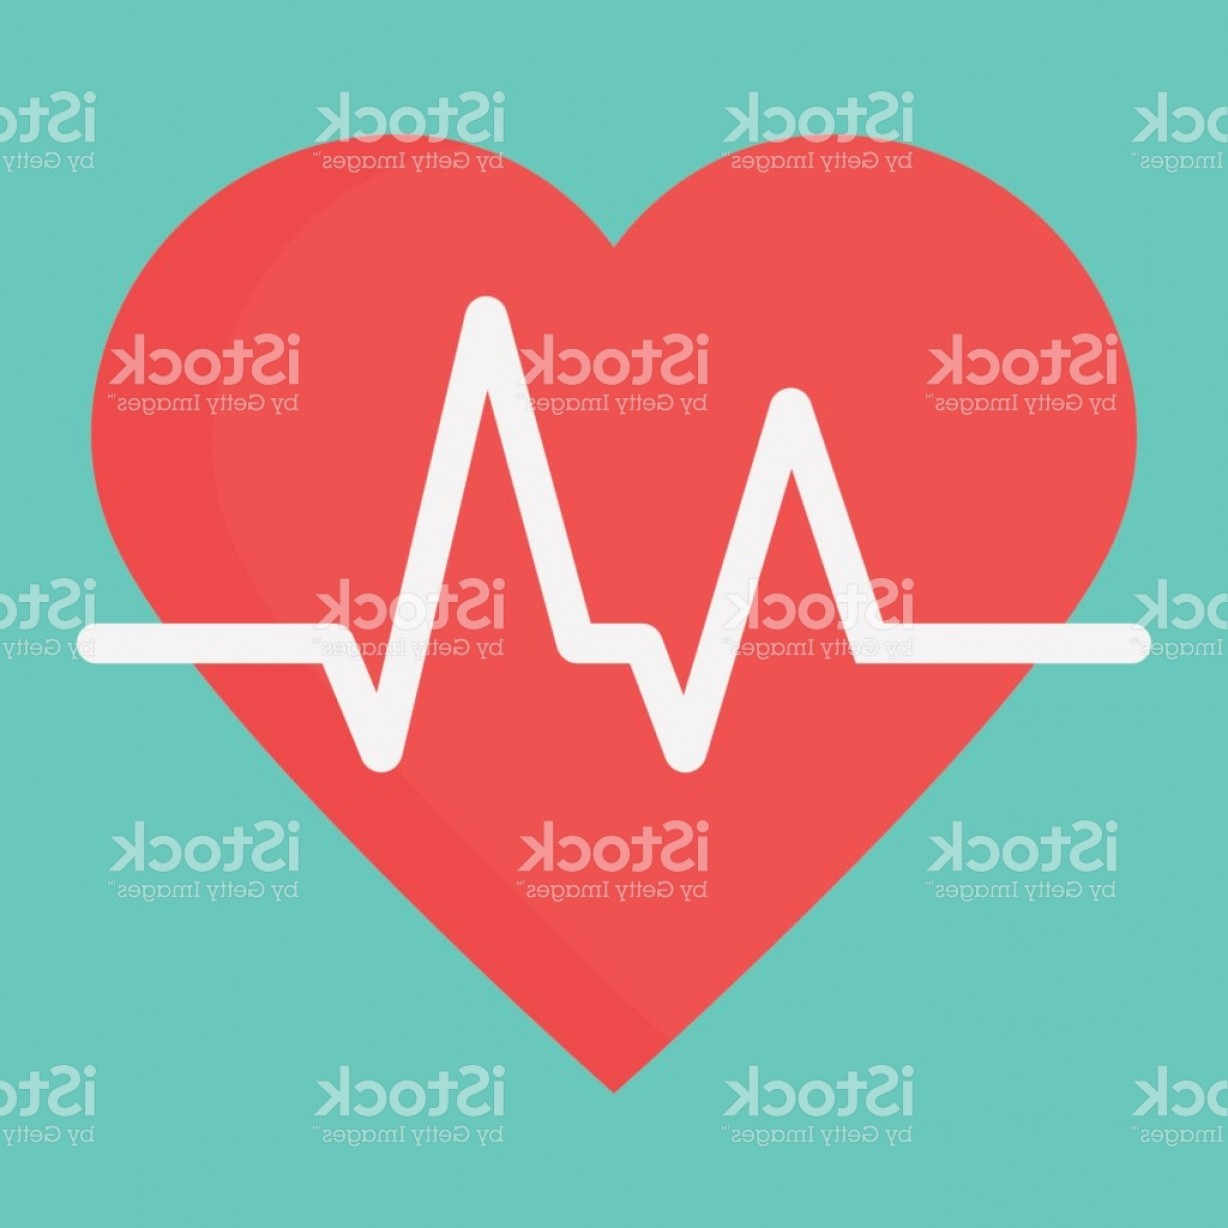 Solid Heart Vector Drawing: Heartbeat Flat Icon Medicine And Healthcare Pulse Sign Vector Graphics A Colorful Gm